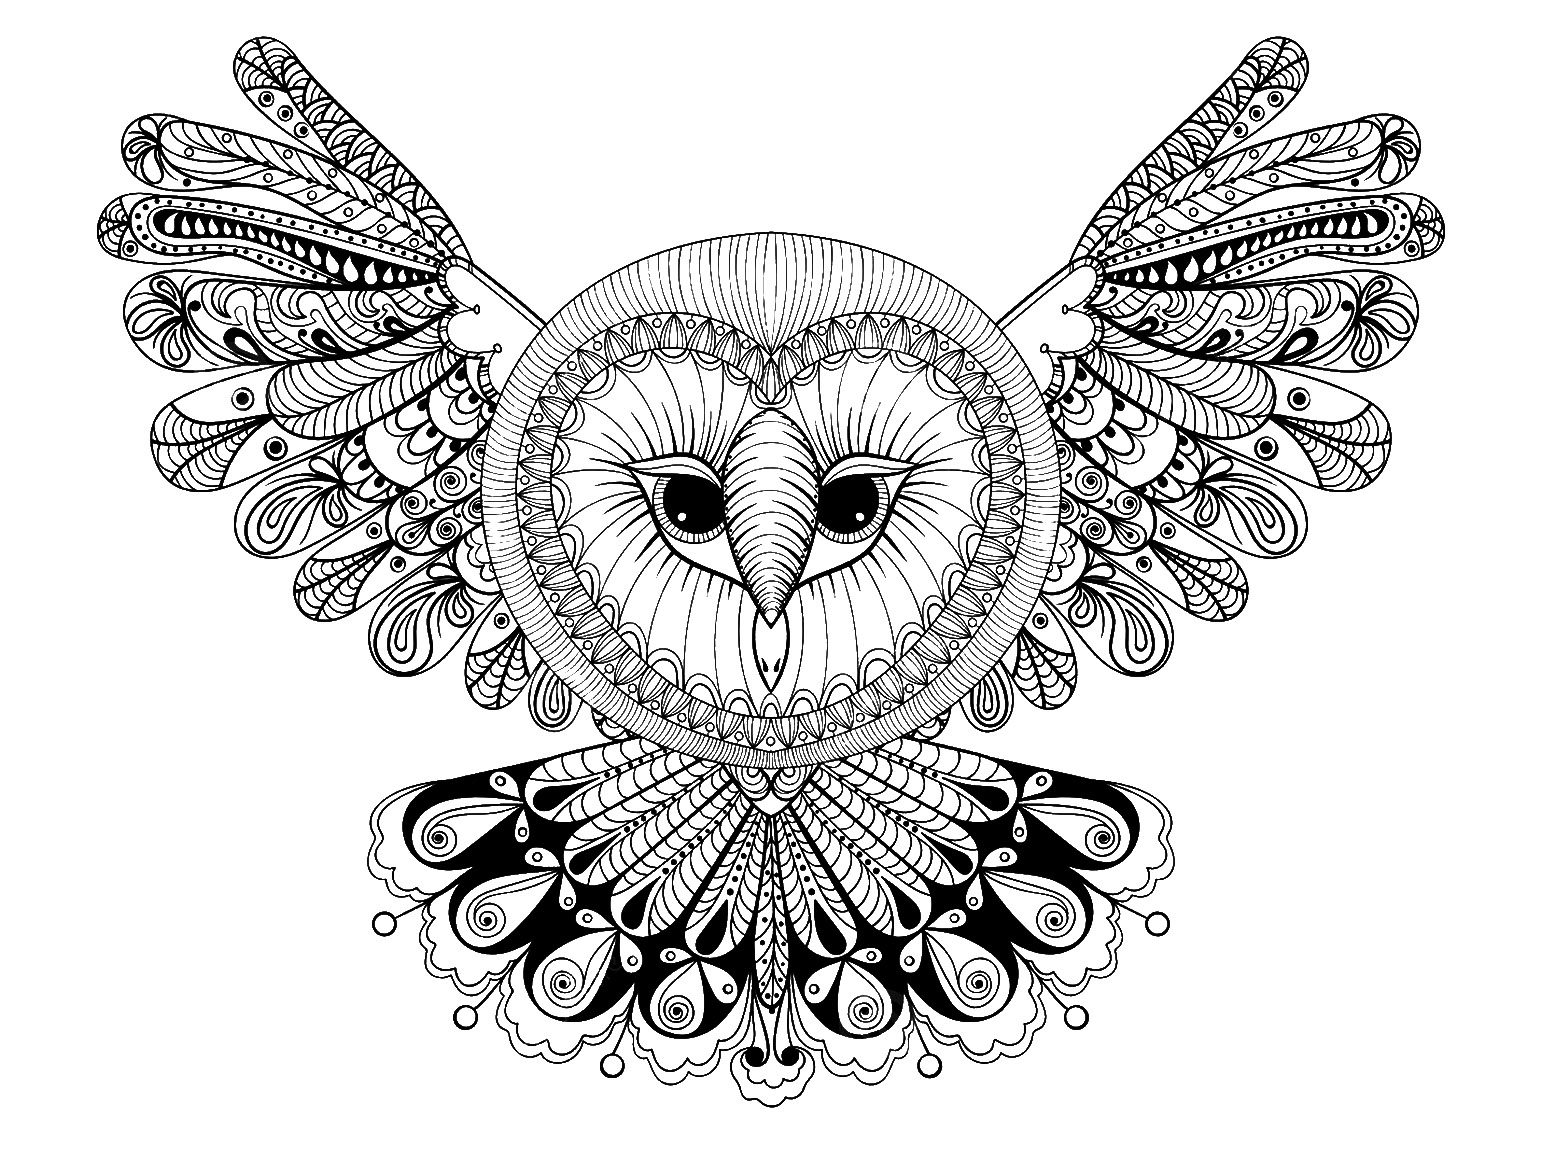 Owl with big head - Owls Adult Coloring Pages